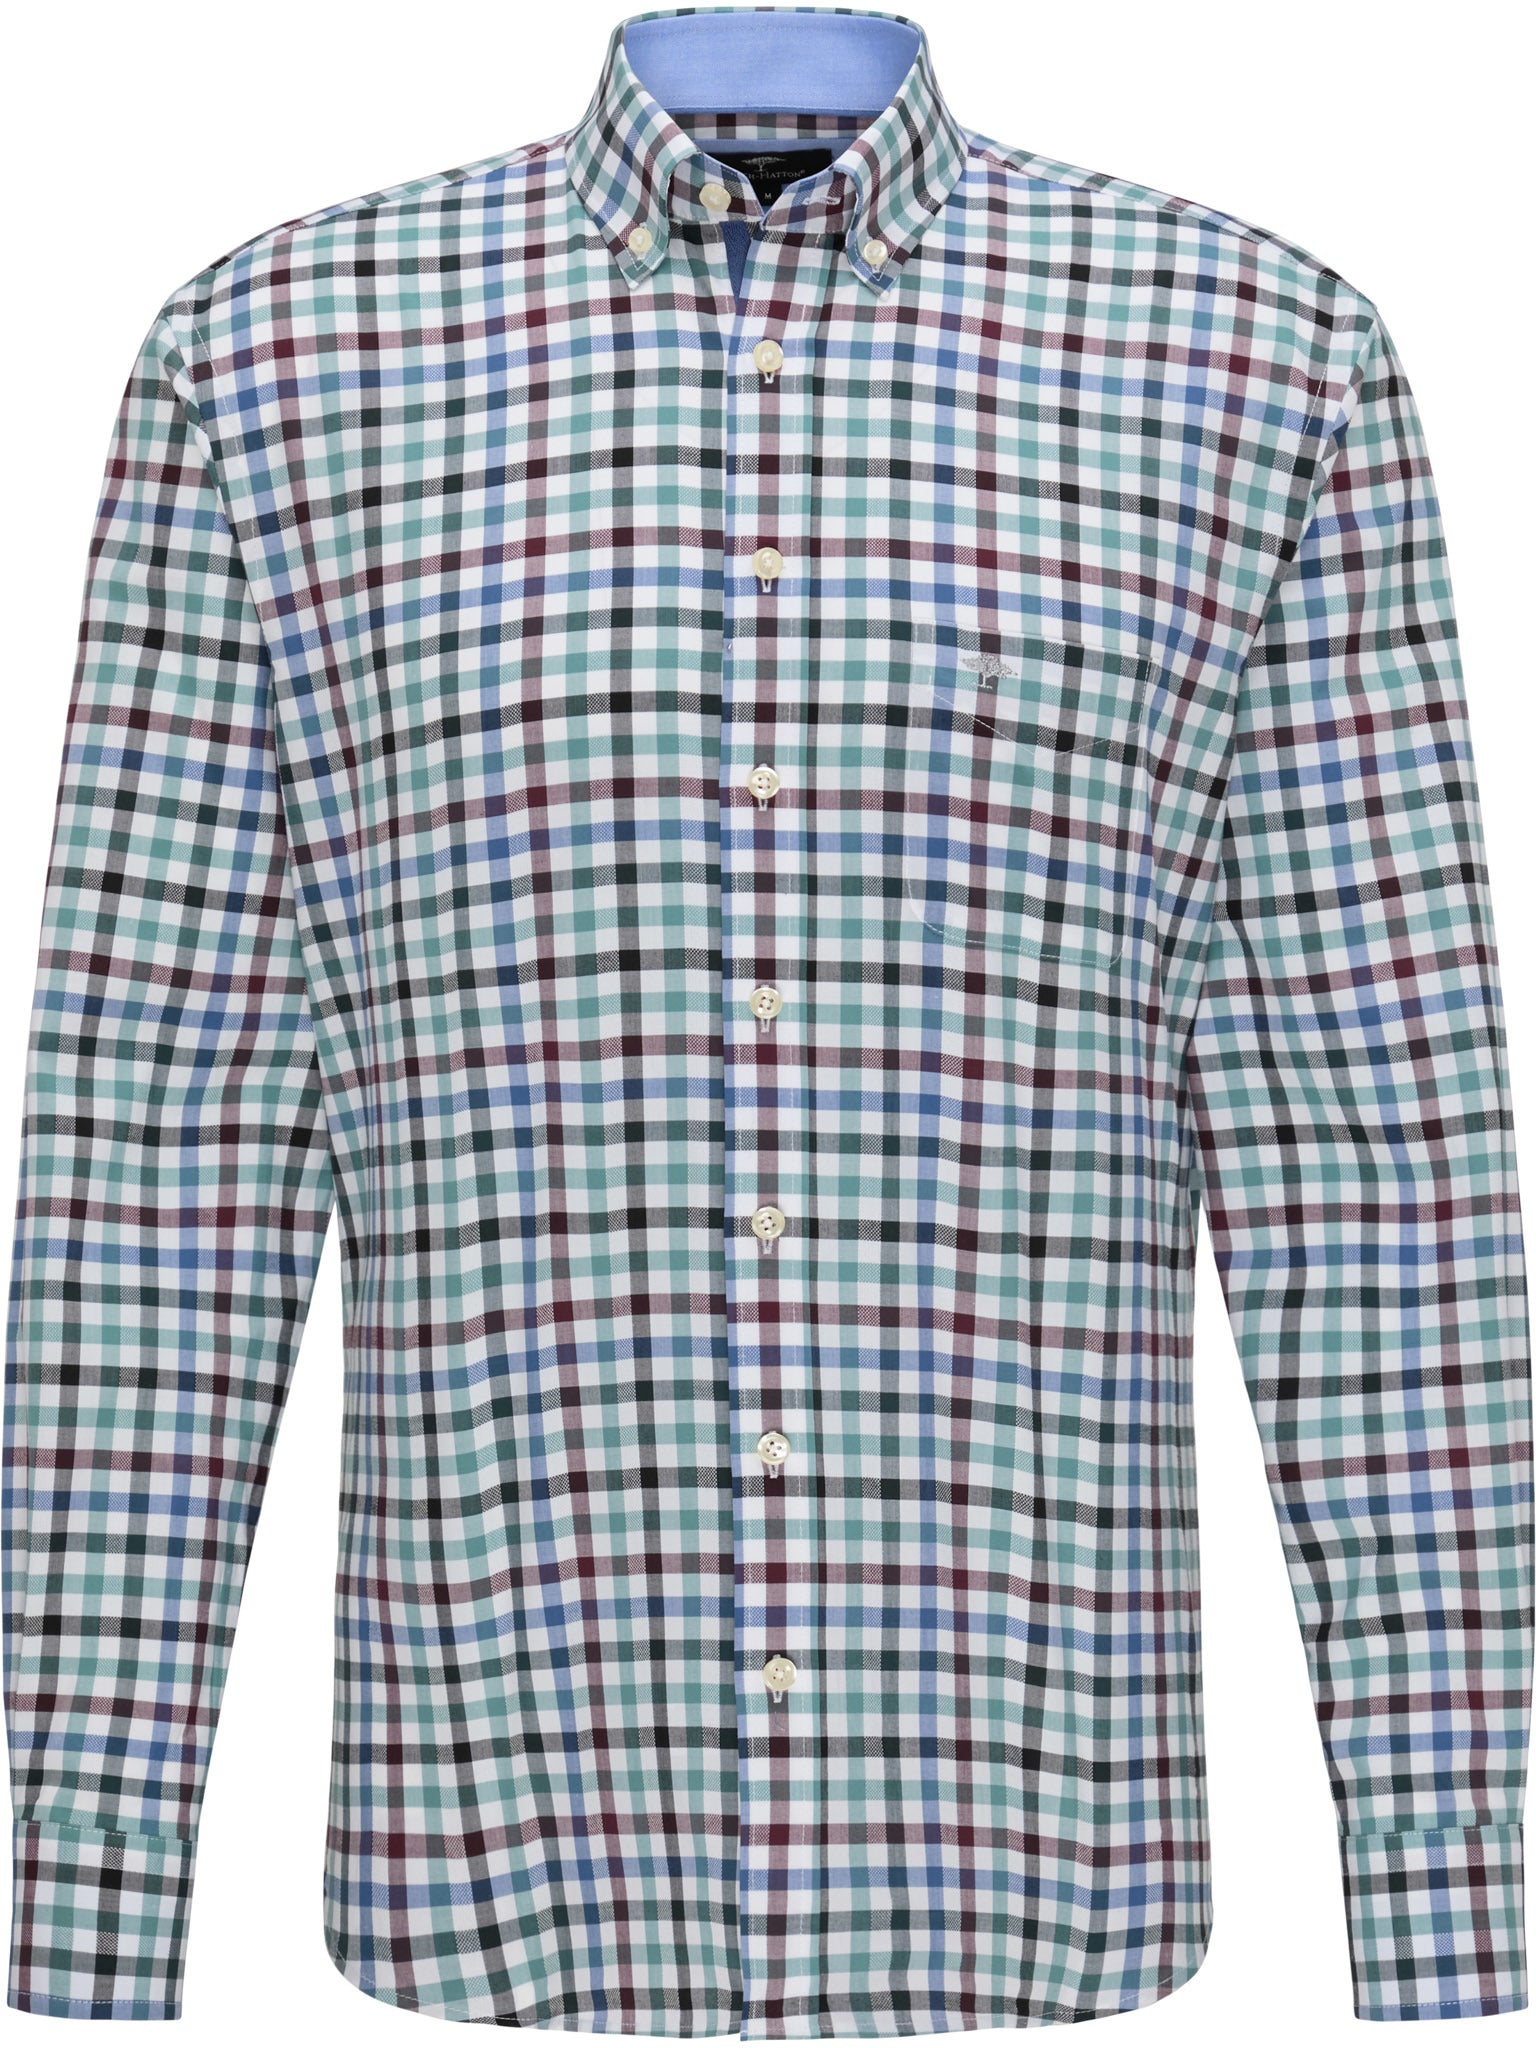 Fynch Hatton Supersoft Combi Check Shirt for Men in Amarena - Softpine